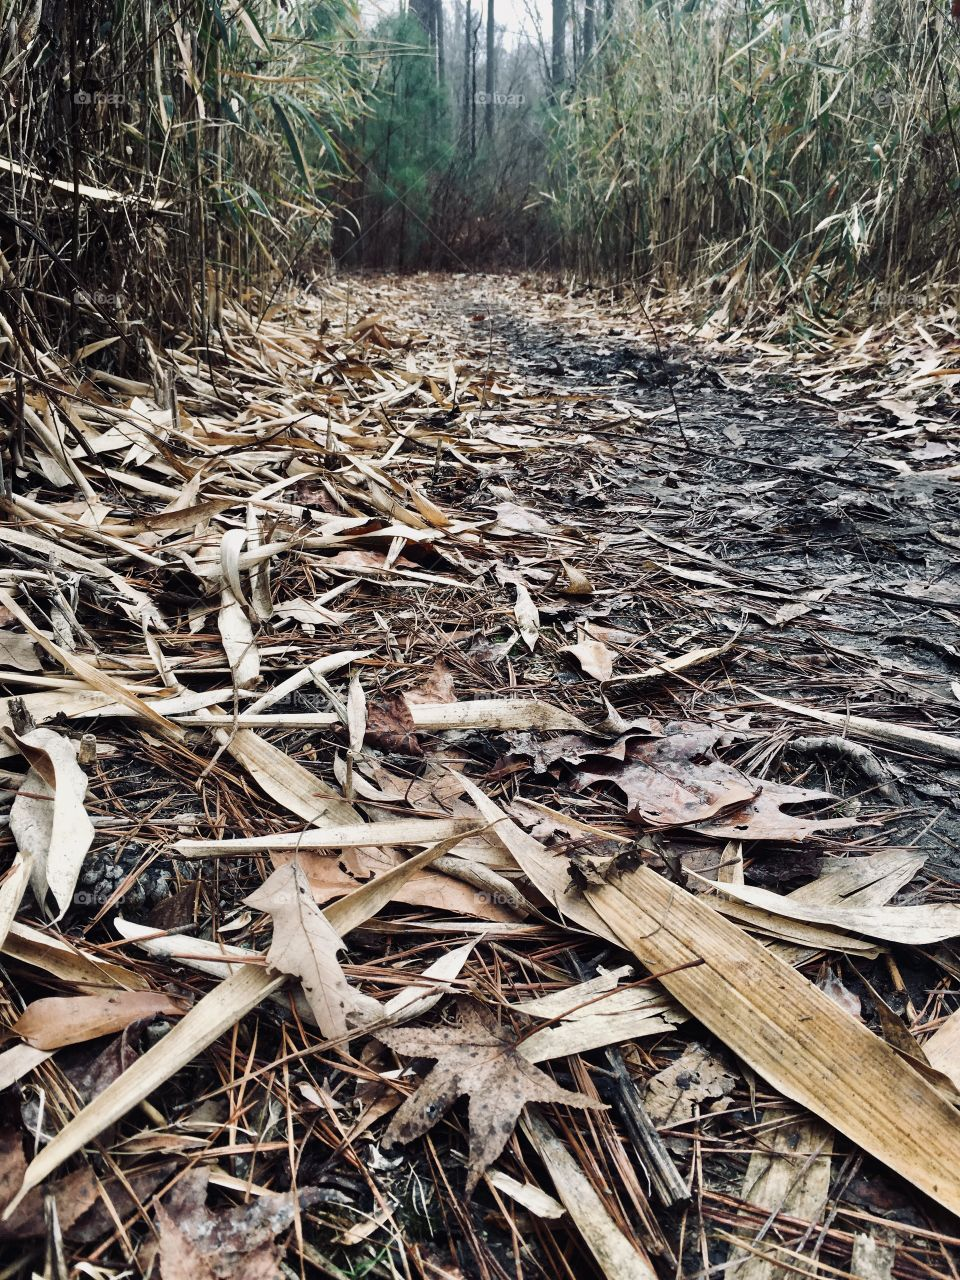 Muddy trail covered with senesced cane leaves in the forest